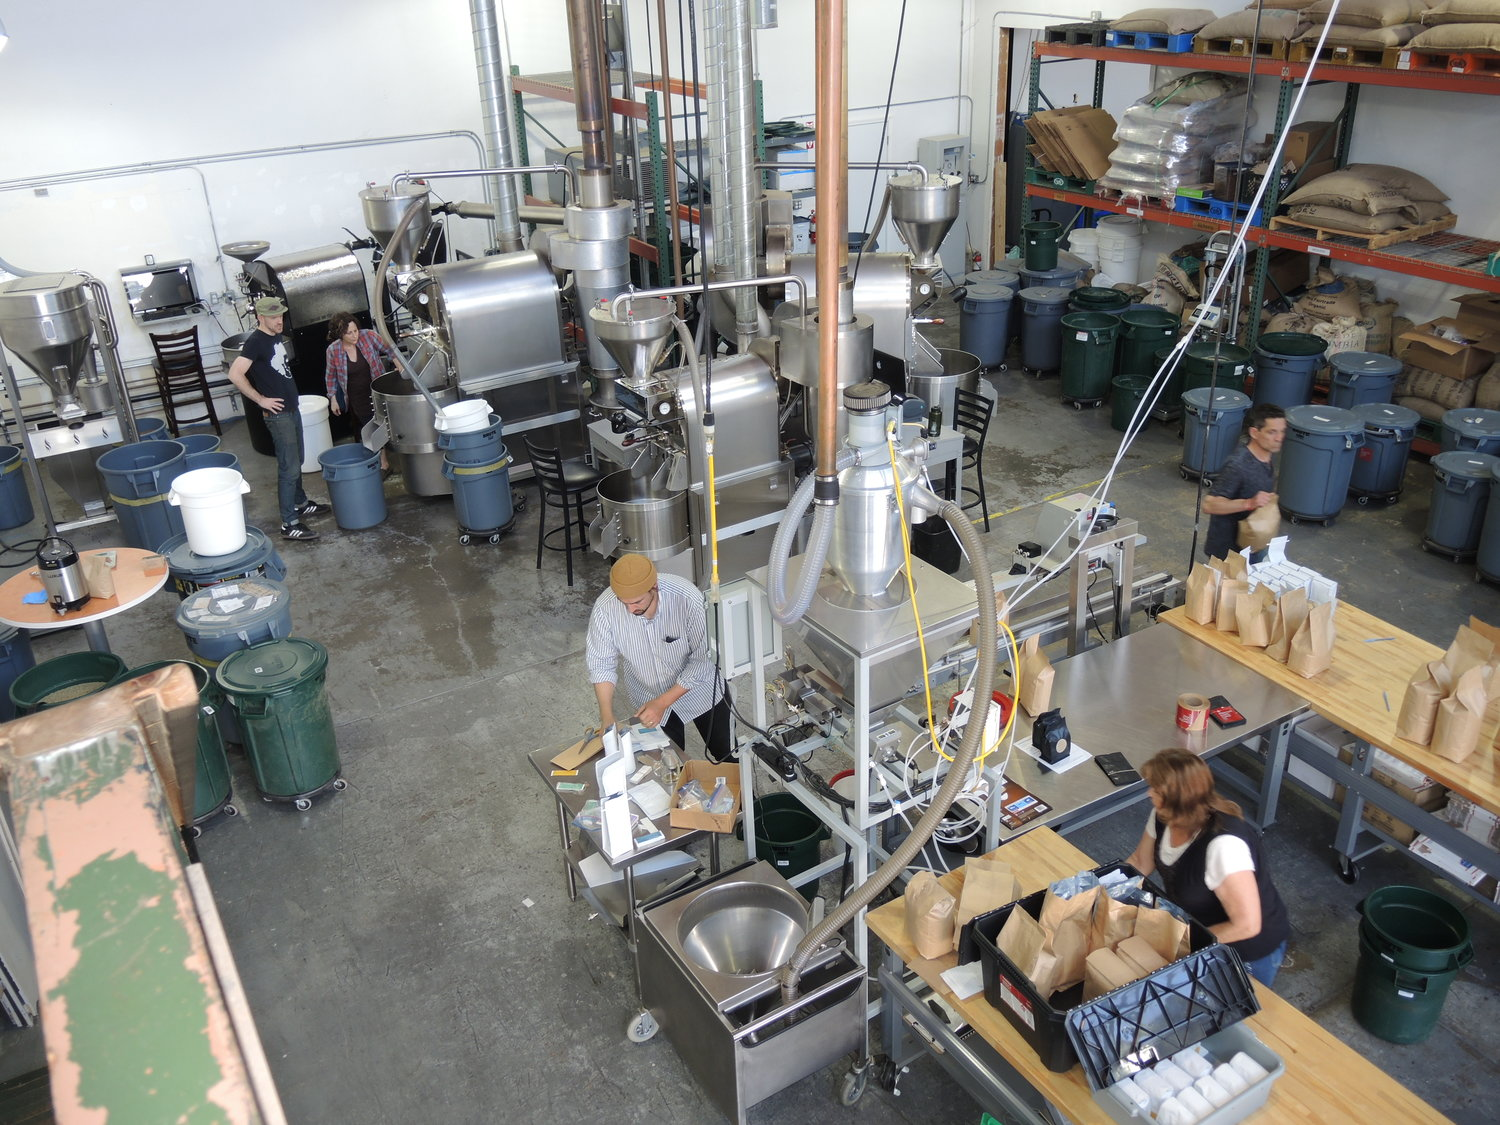 Workers at Bay Area CoRoasters, a collaborative coffee roasting space in West Berkeley.